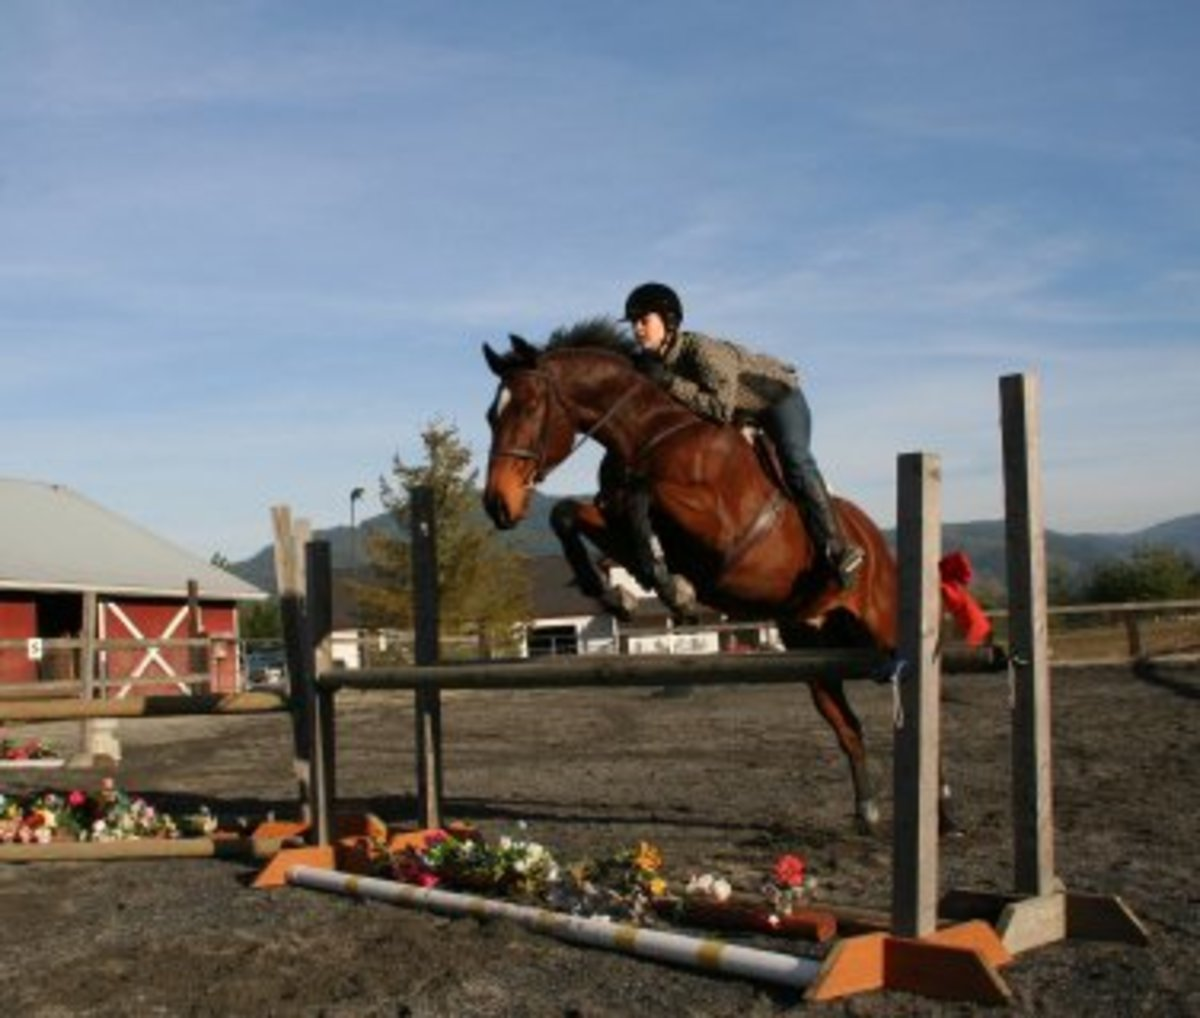 English-style riders often jump horses in an arena.